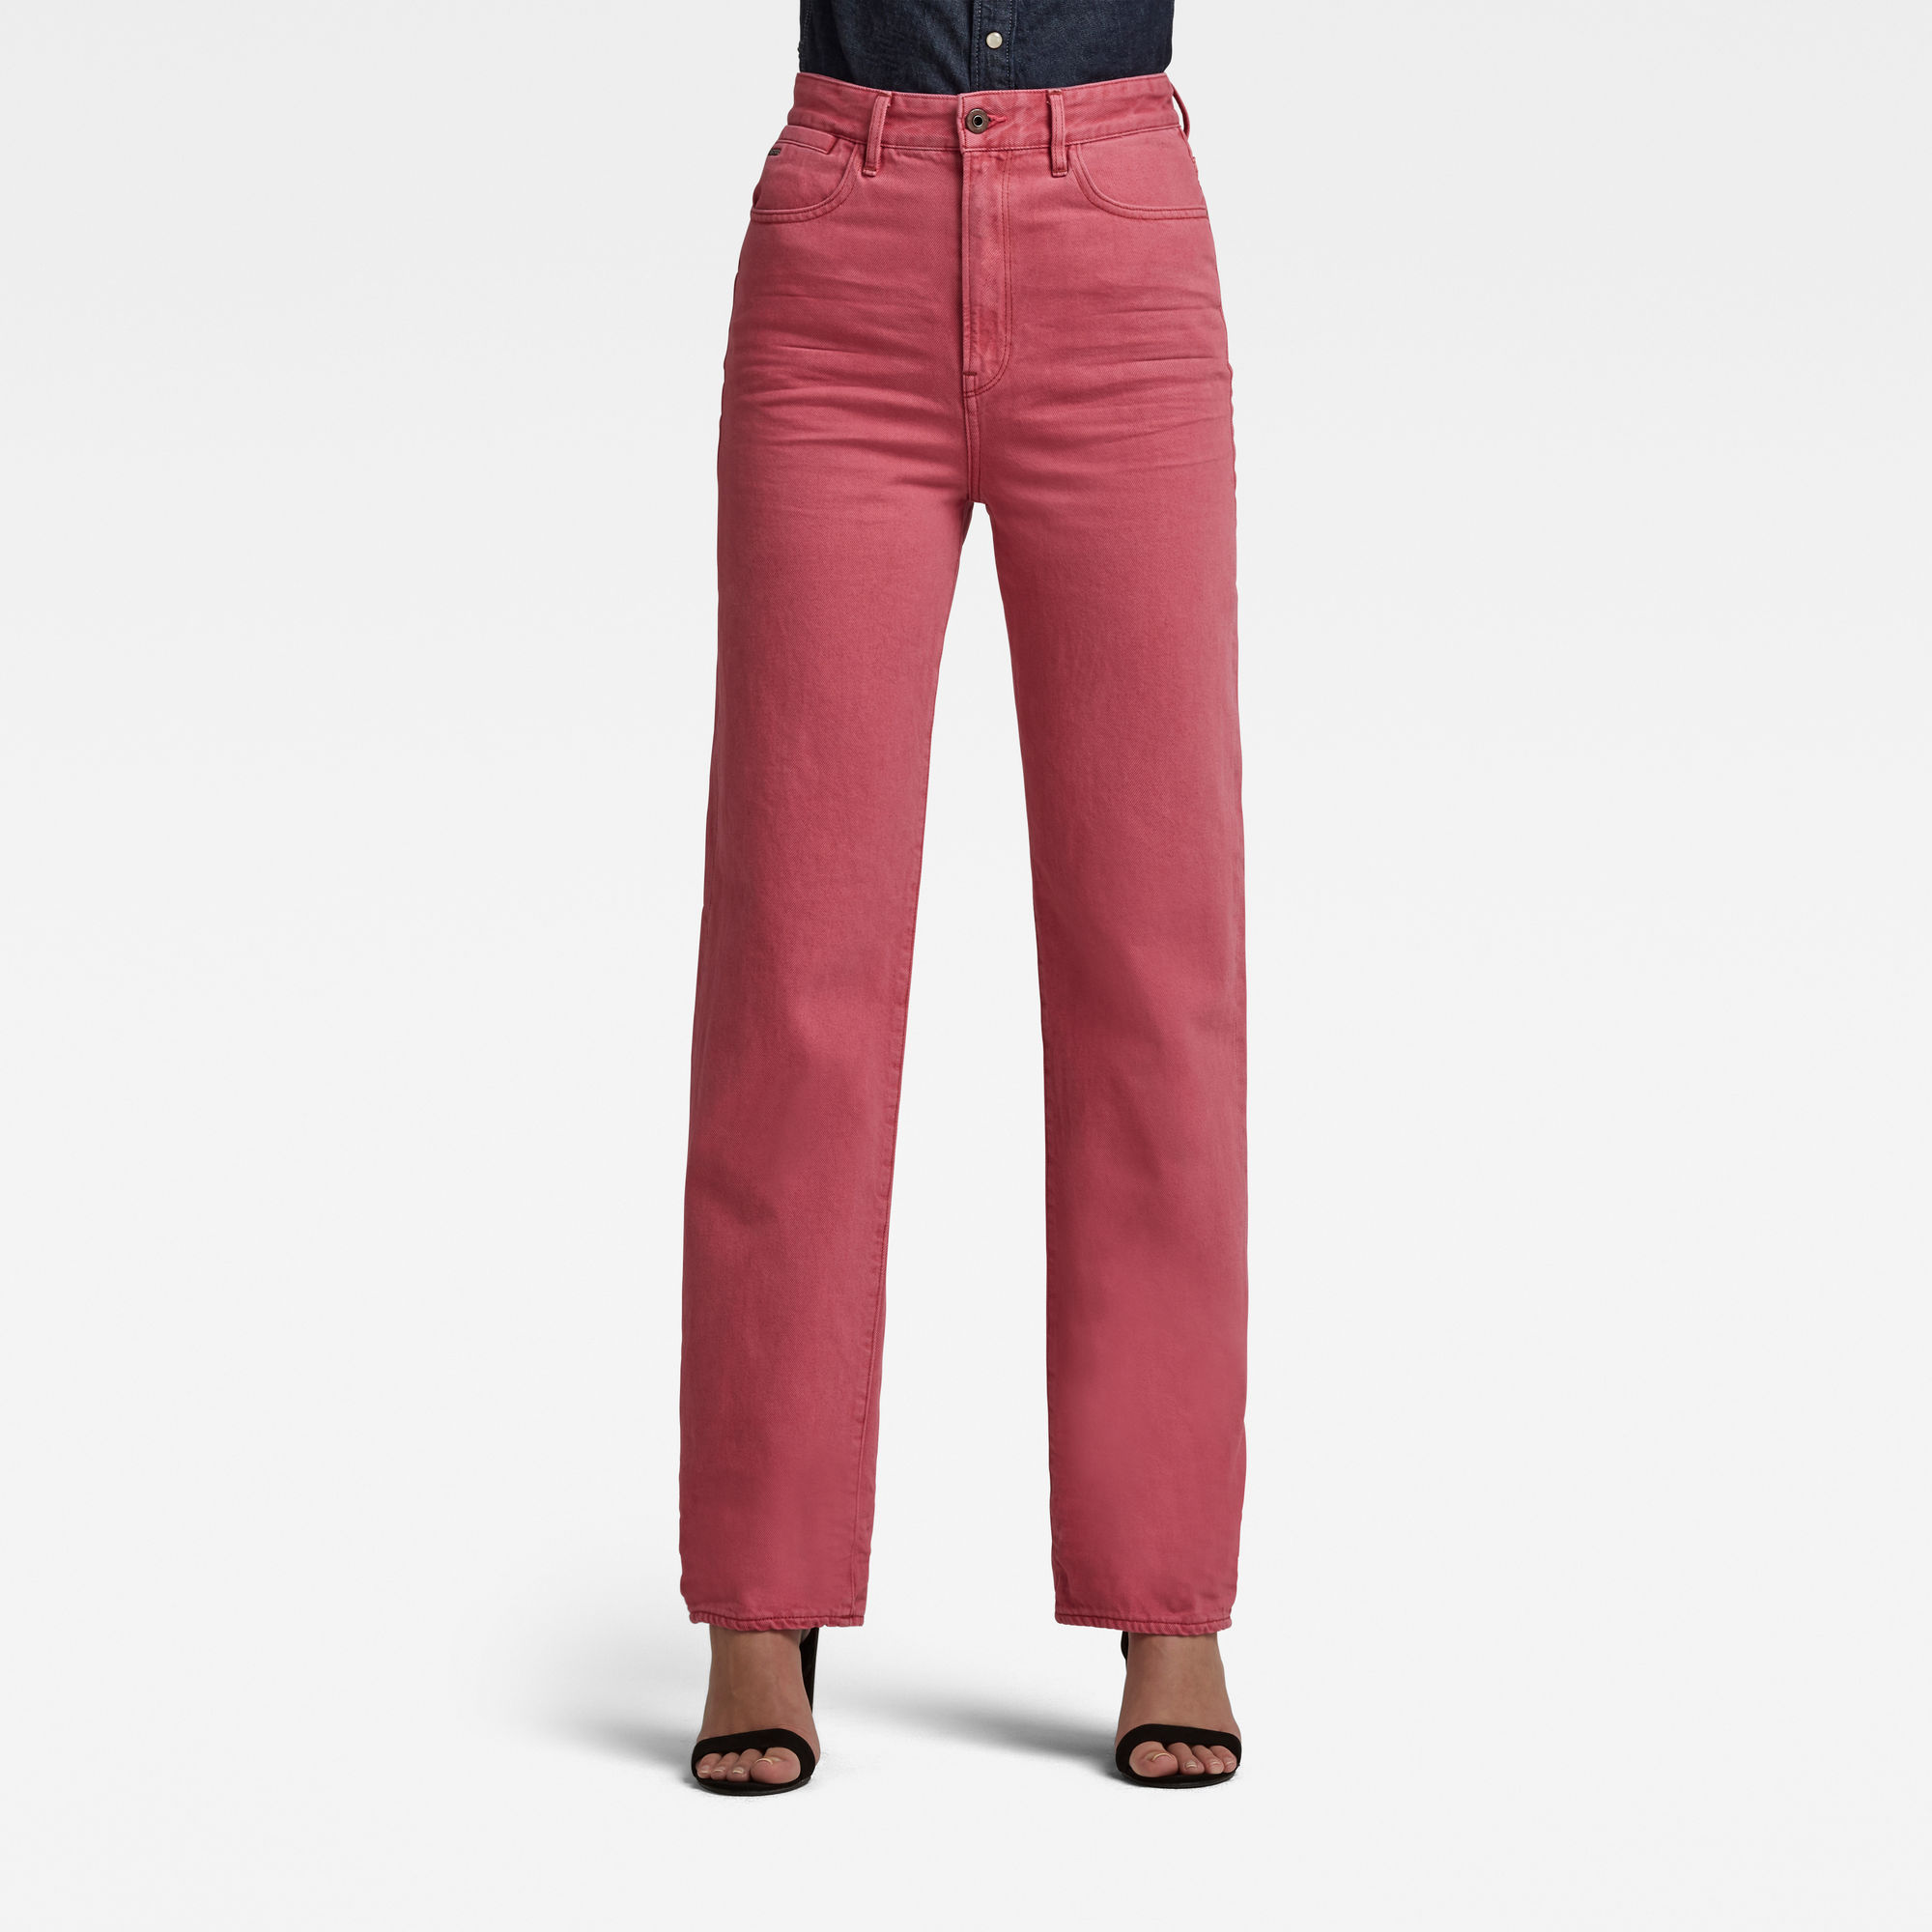 G-Star RAW Dames Tedie Ultra High Long Straight Jeans Roze